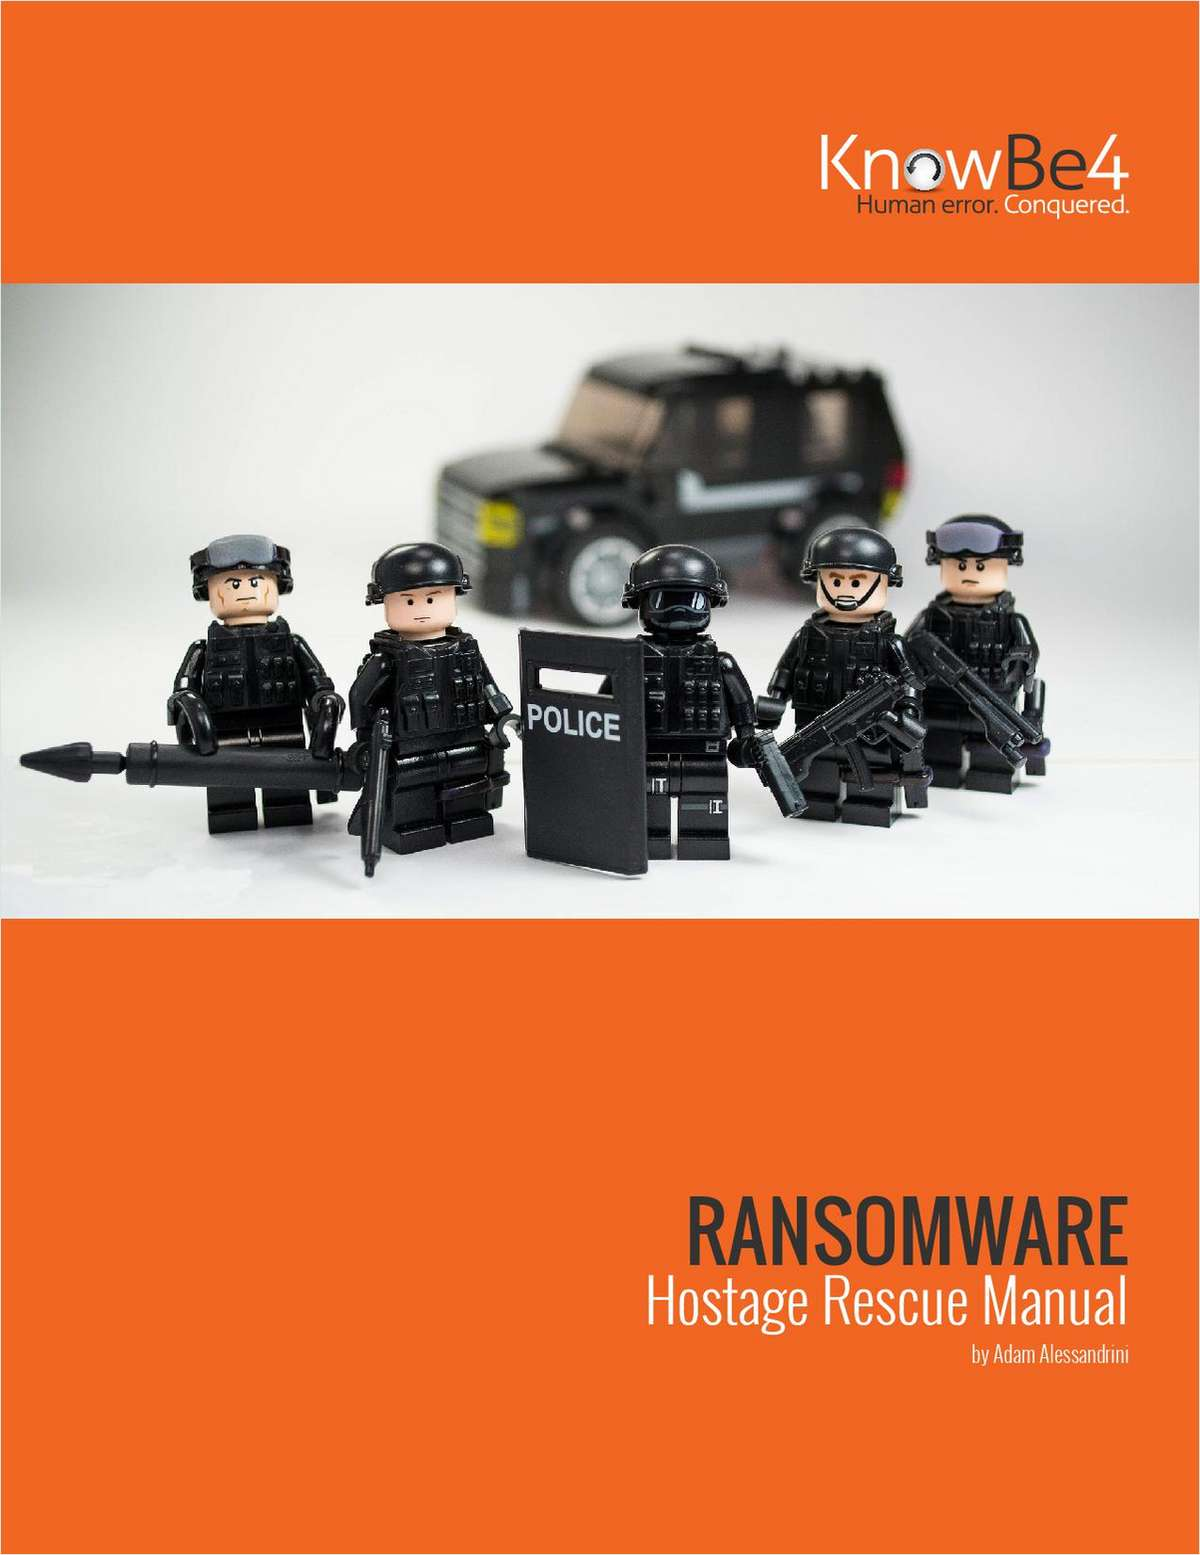 Ransomware Hostage Rescue Manual for IT Pros